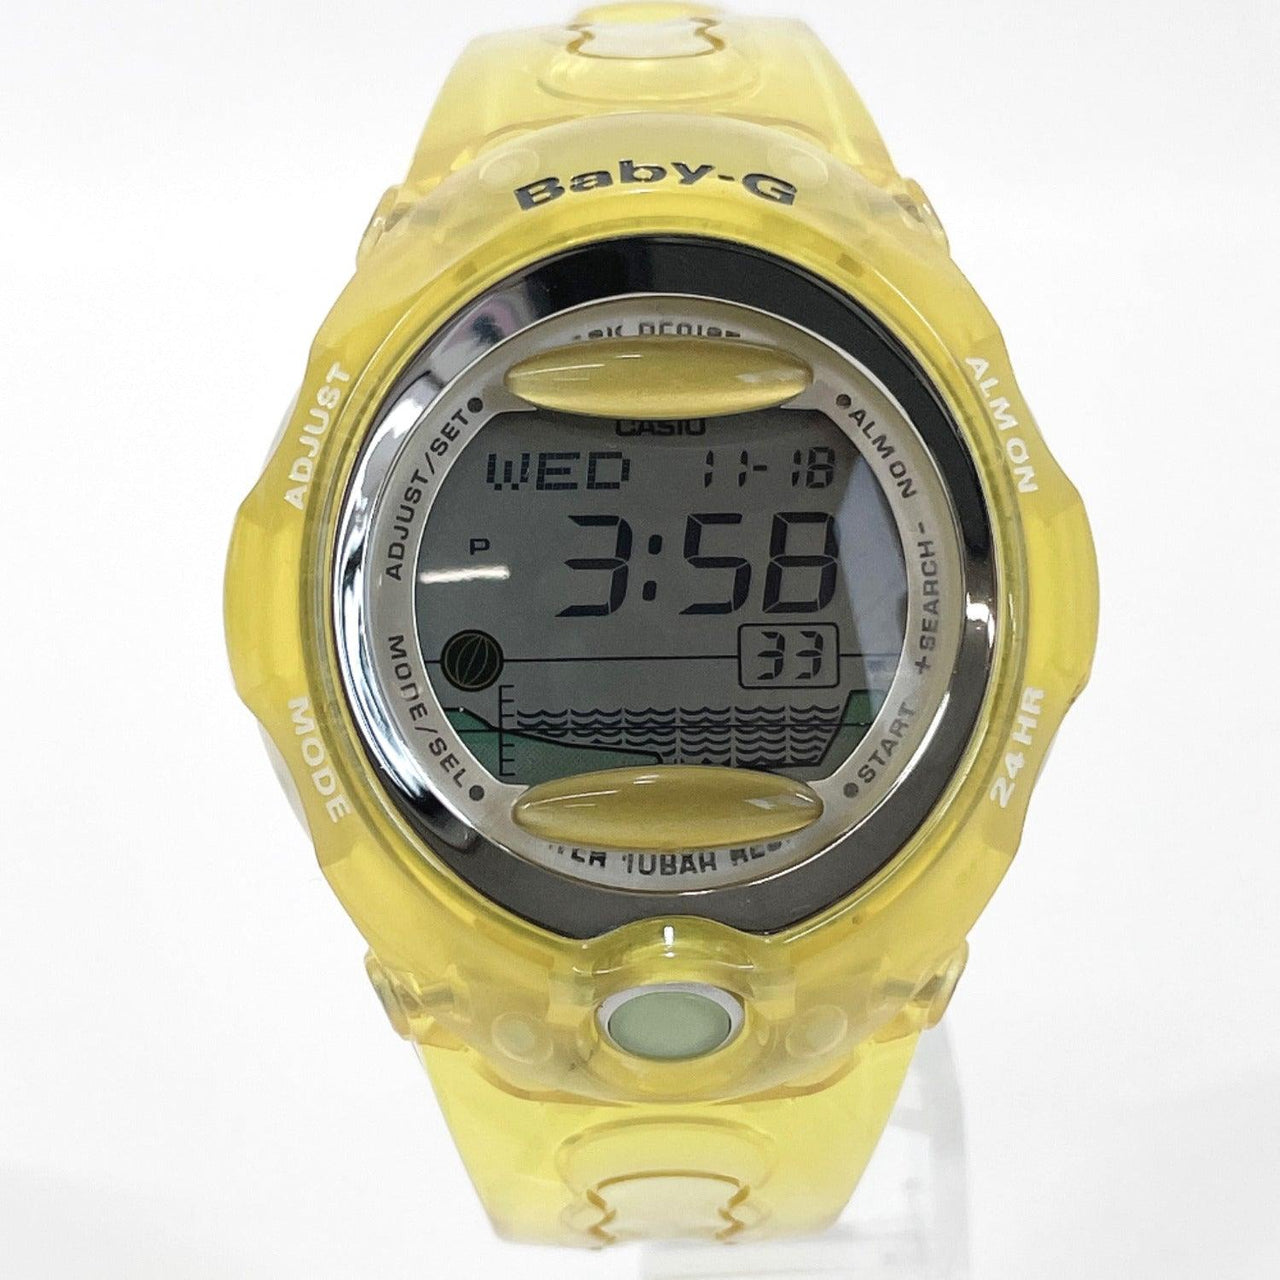 CASIO Watches BGX-200 Baby G Synthetic resin yellow unisex Used